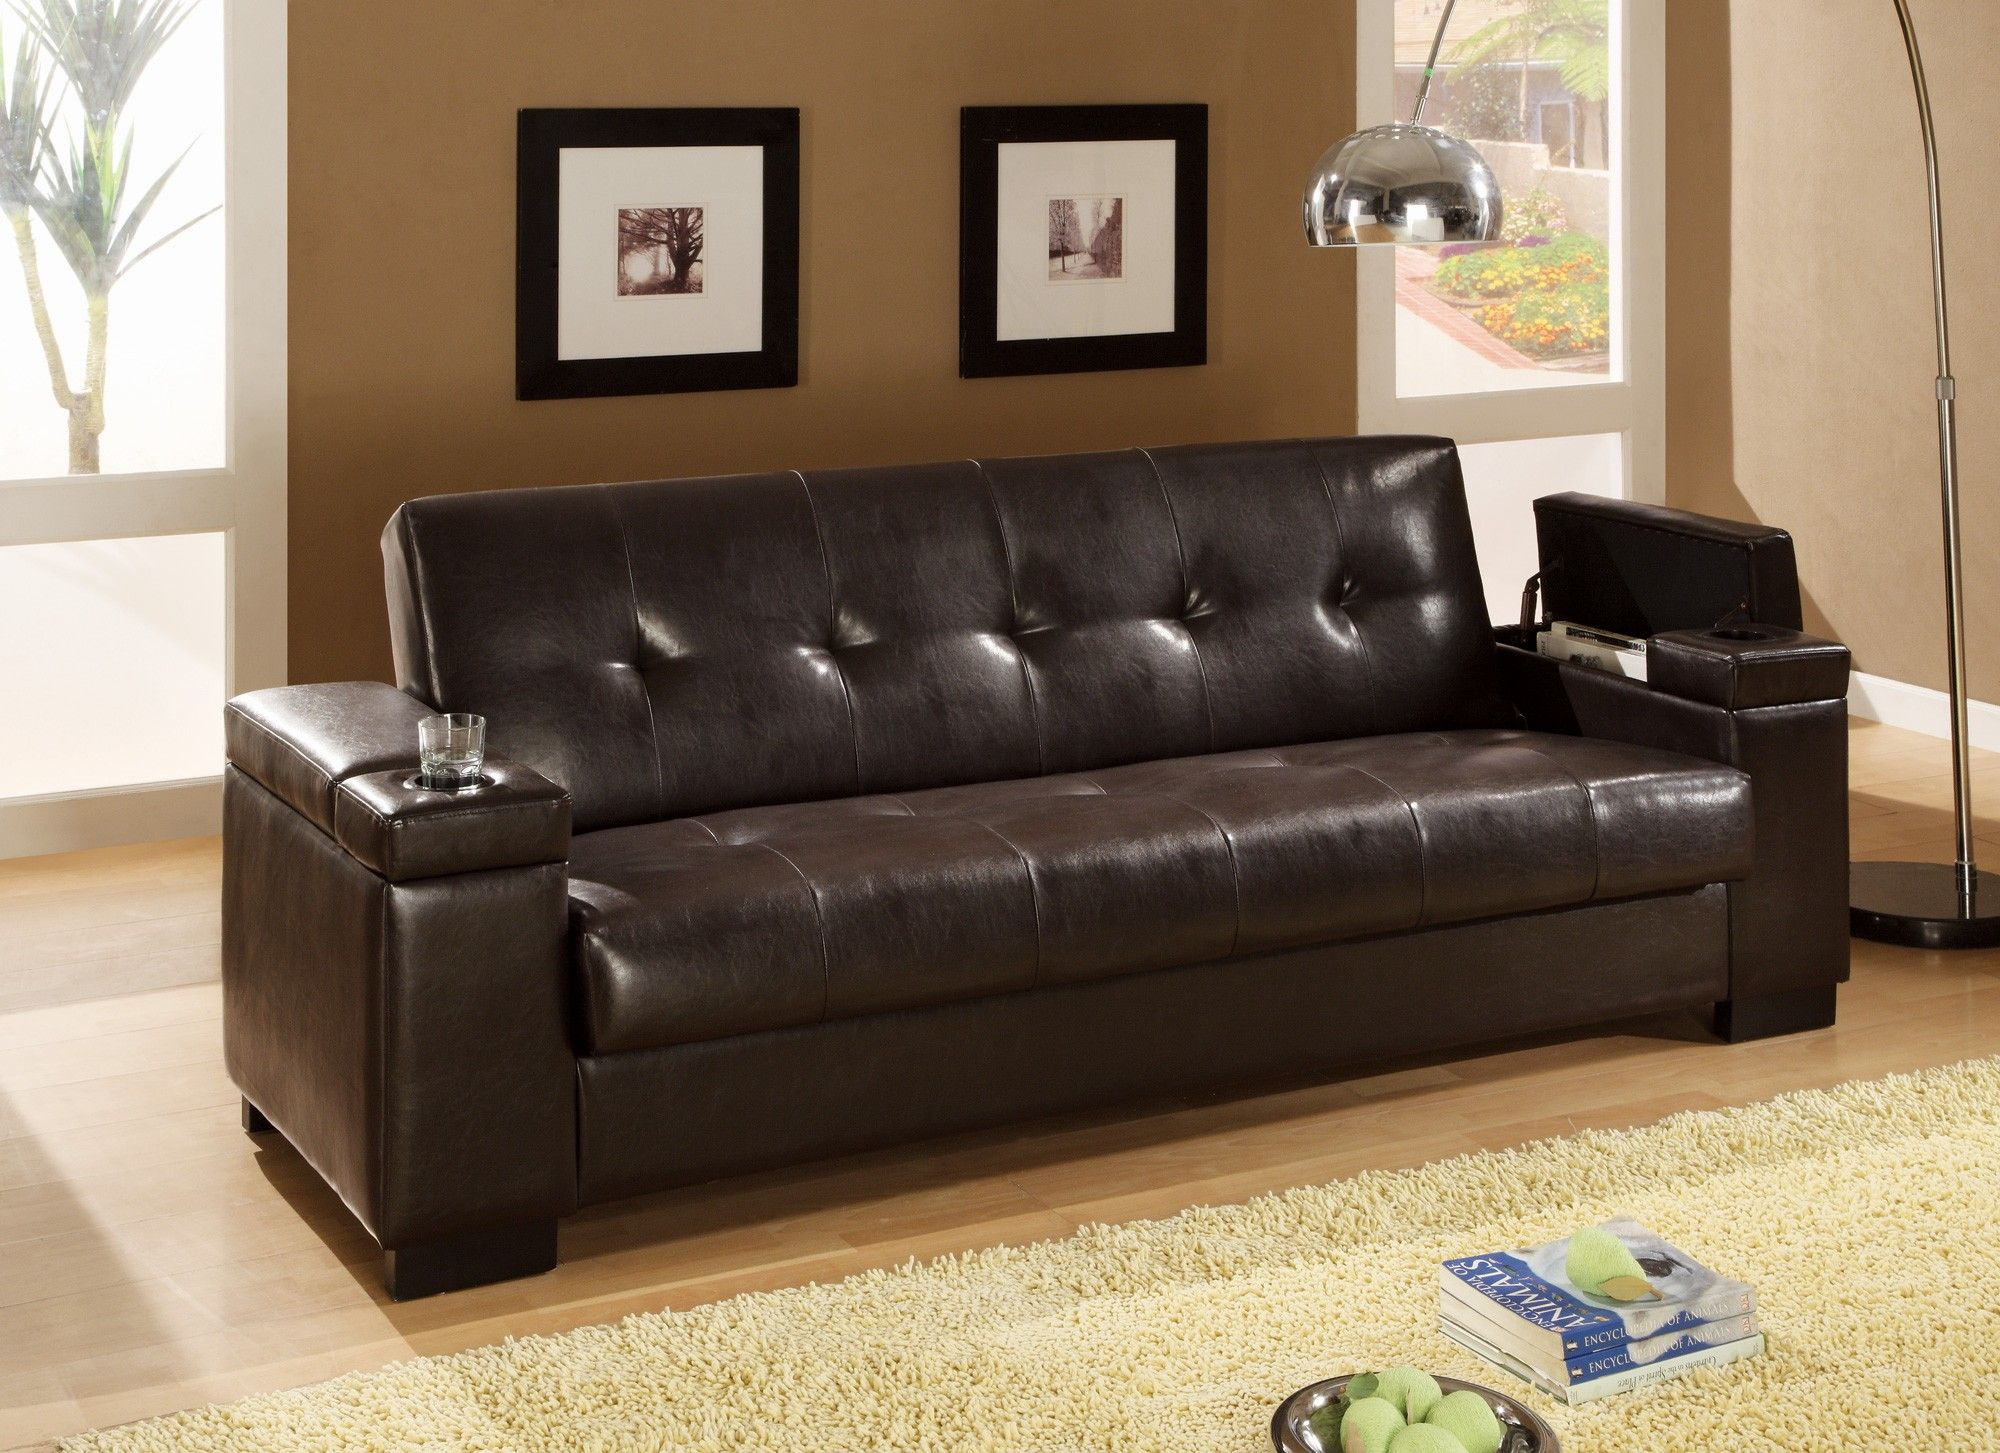 Faux Leather Convertible Sofa Sleeper With Storage And Cup Holders